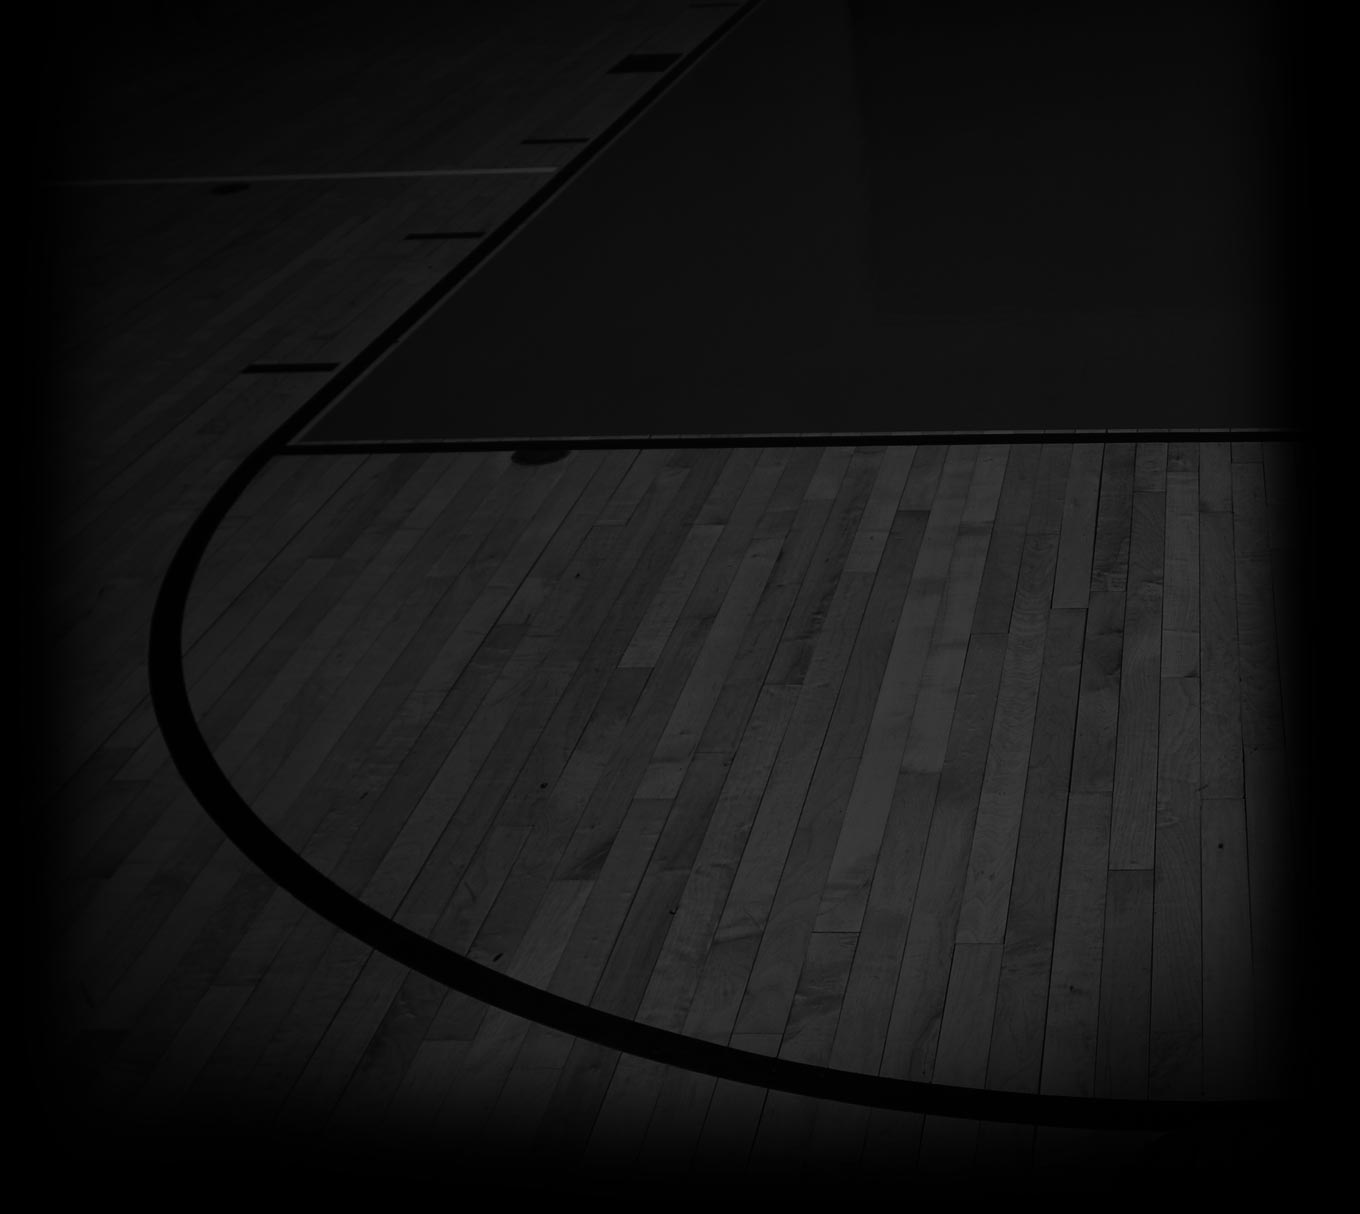 background-basketball